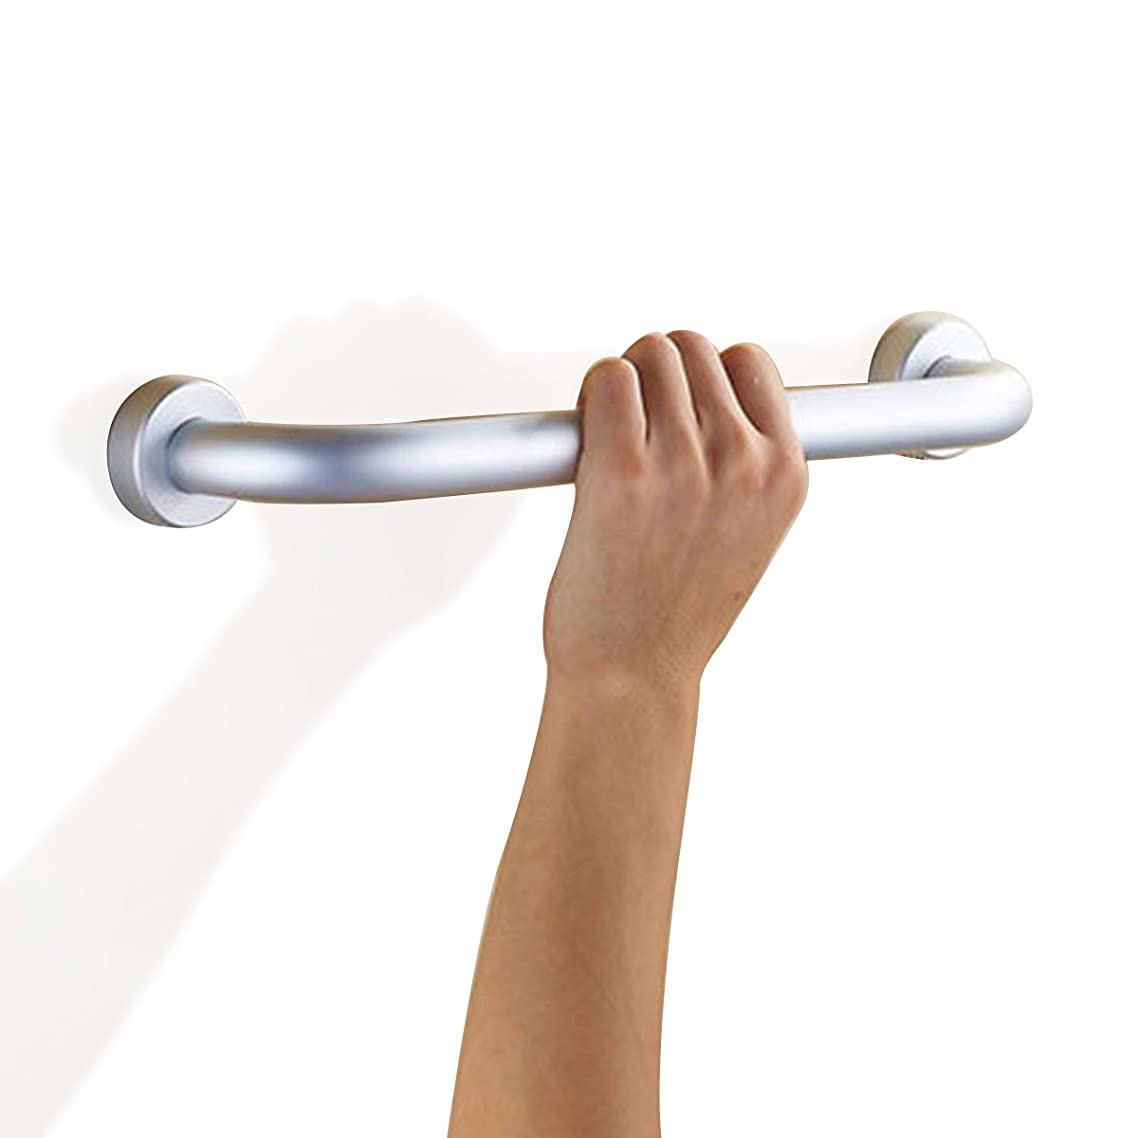 oenbopo Anti-Slip Bath Handgrip Grab Bar 30cm/11.8